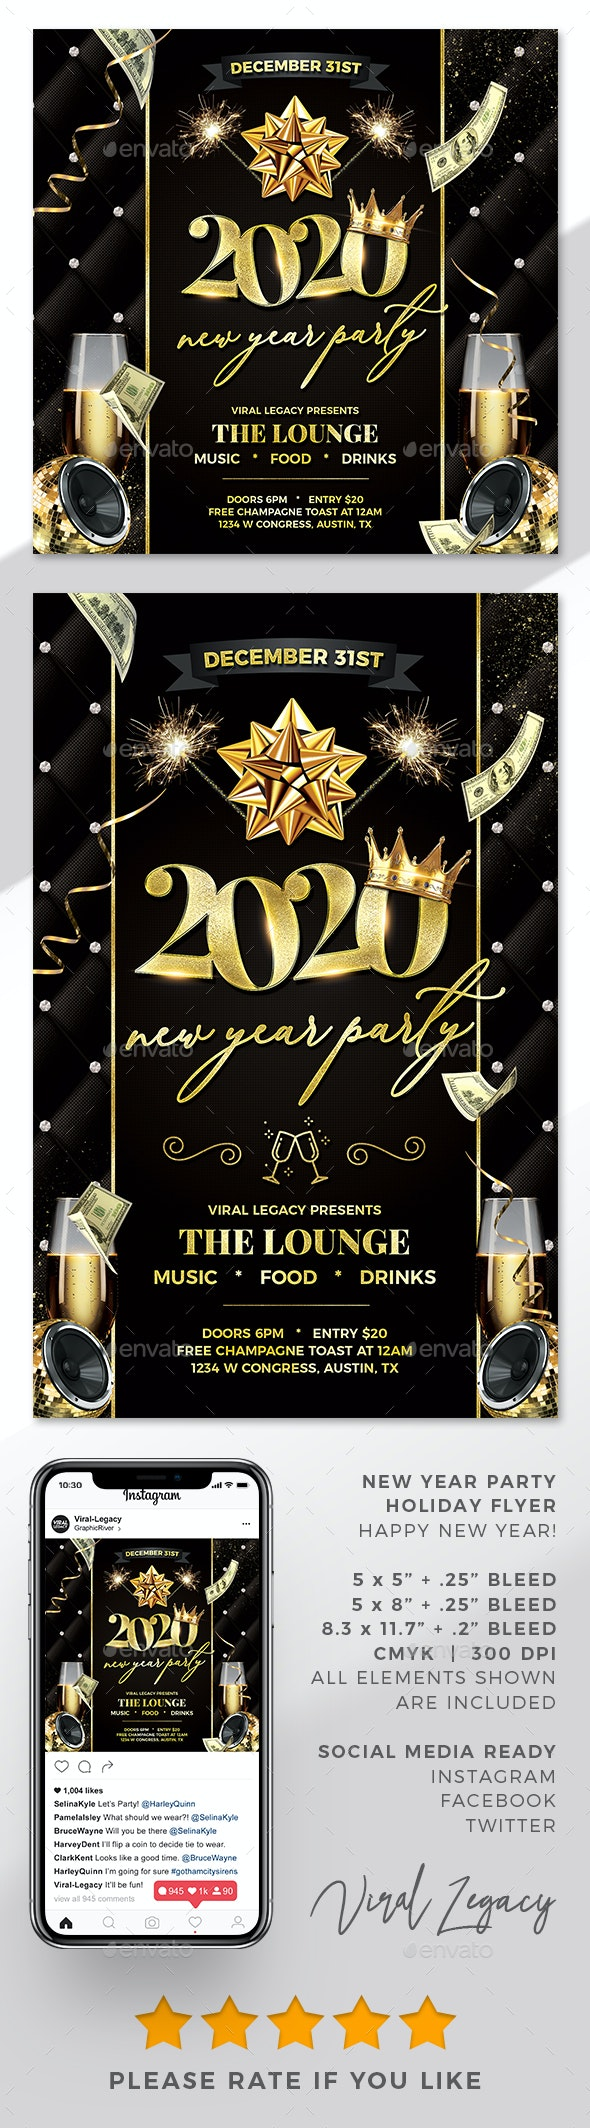 New Year Party Poster / Flyer V24 - Flyers Print Templates